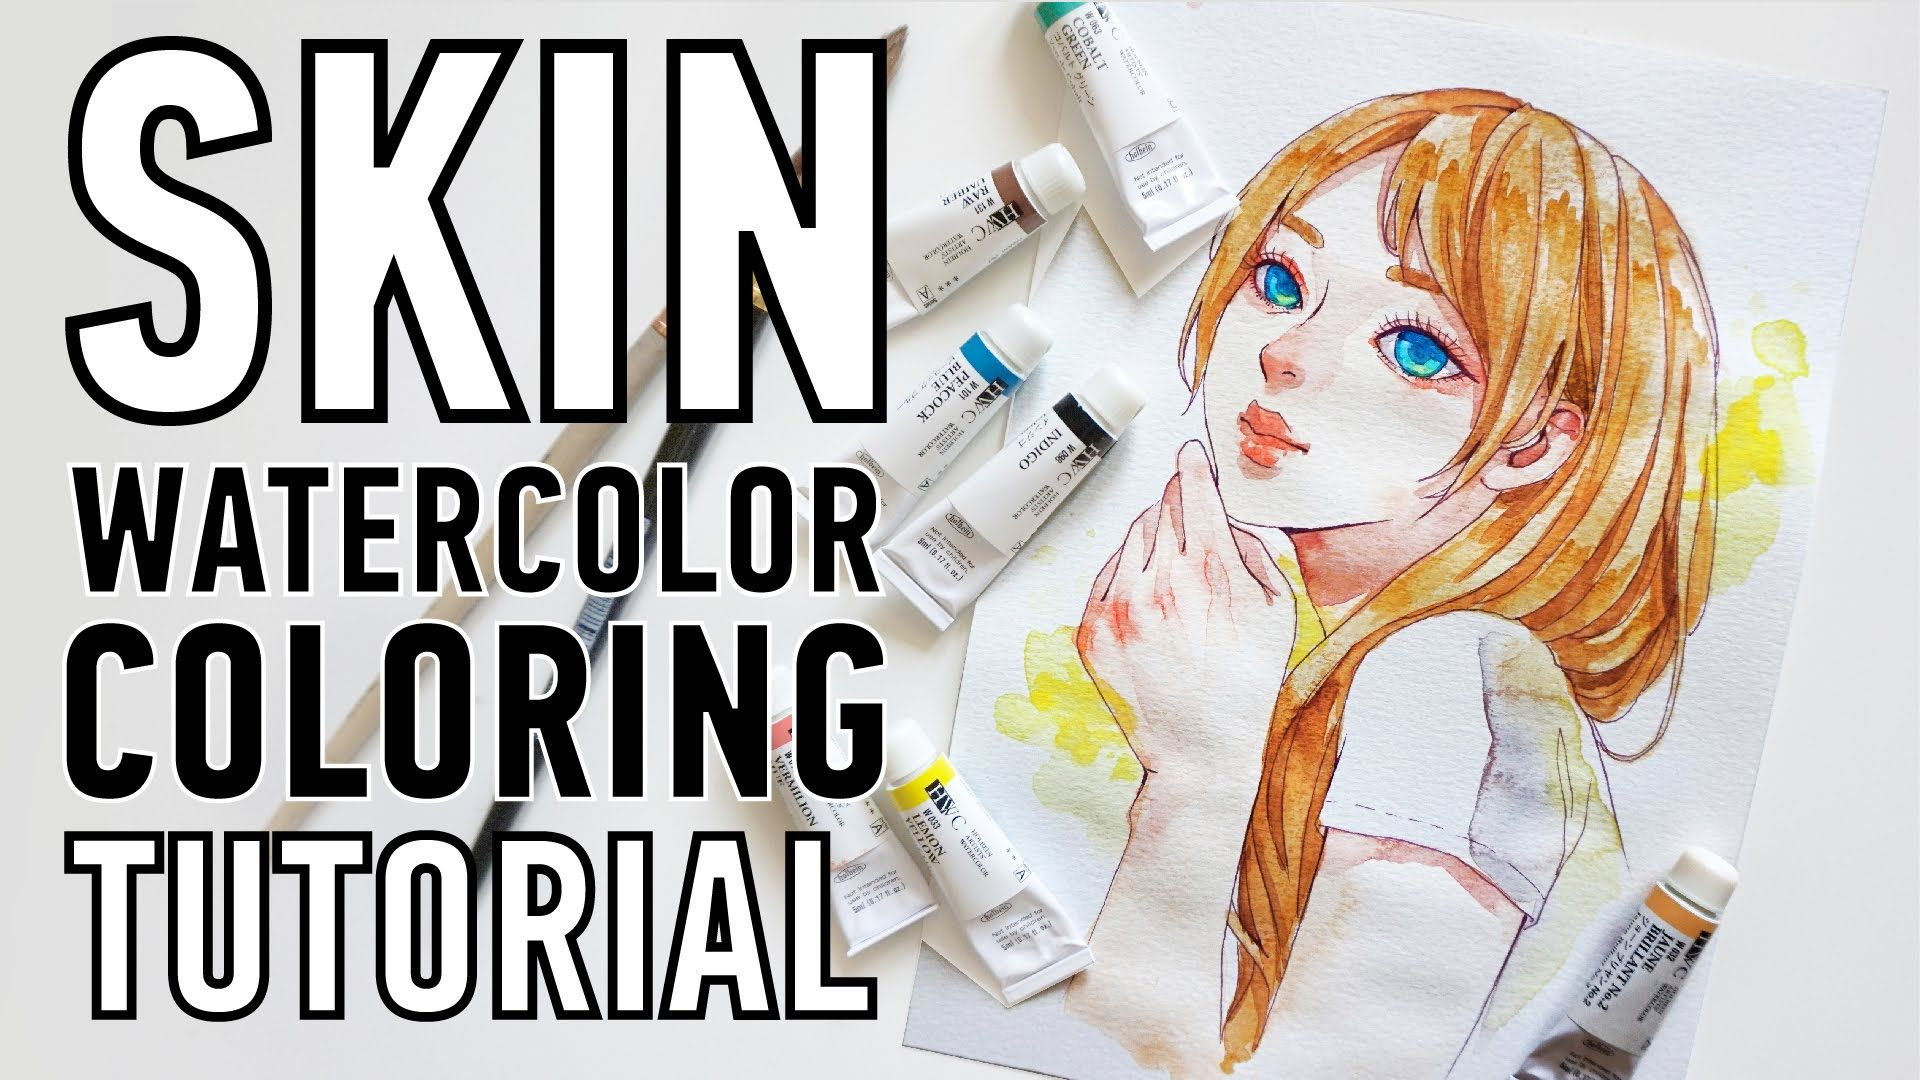 Skin Watercolor Coloring Tutorial Watercolor Skin Tones